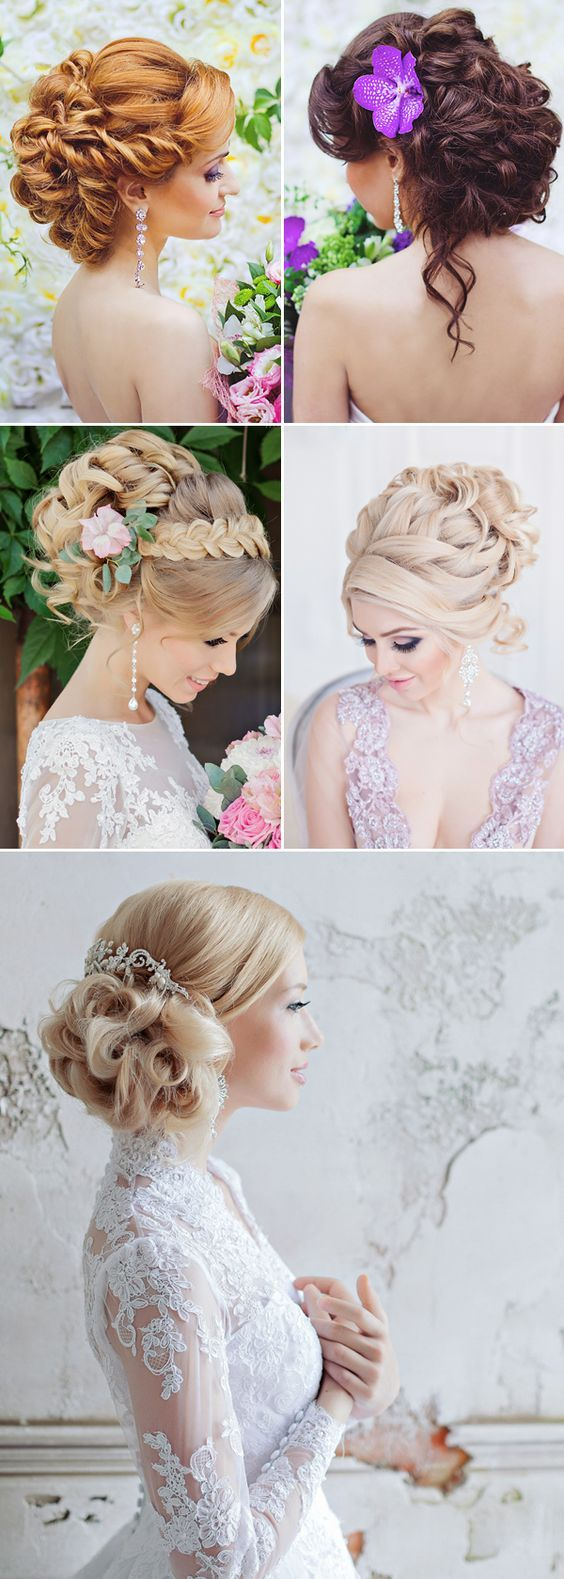 30 Seriously Hairstyles for Weddings (with Tutorial) | Wedding updo ...